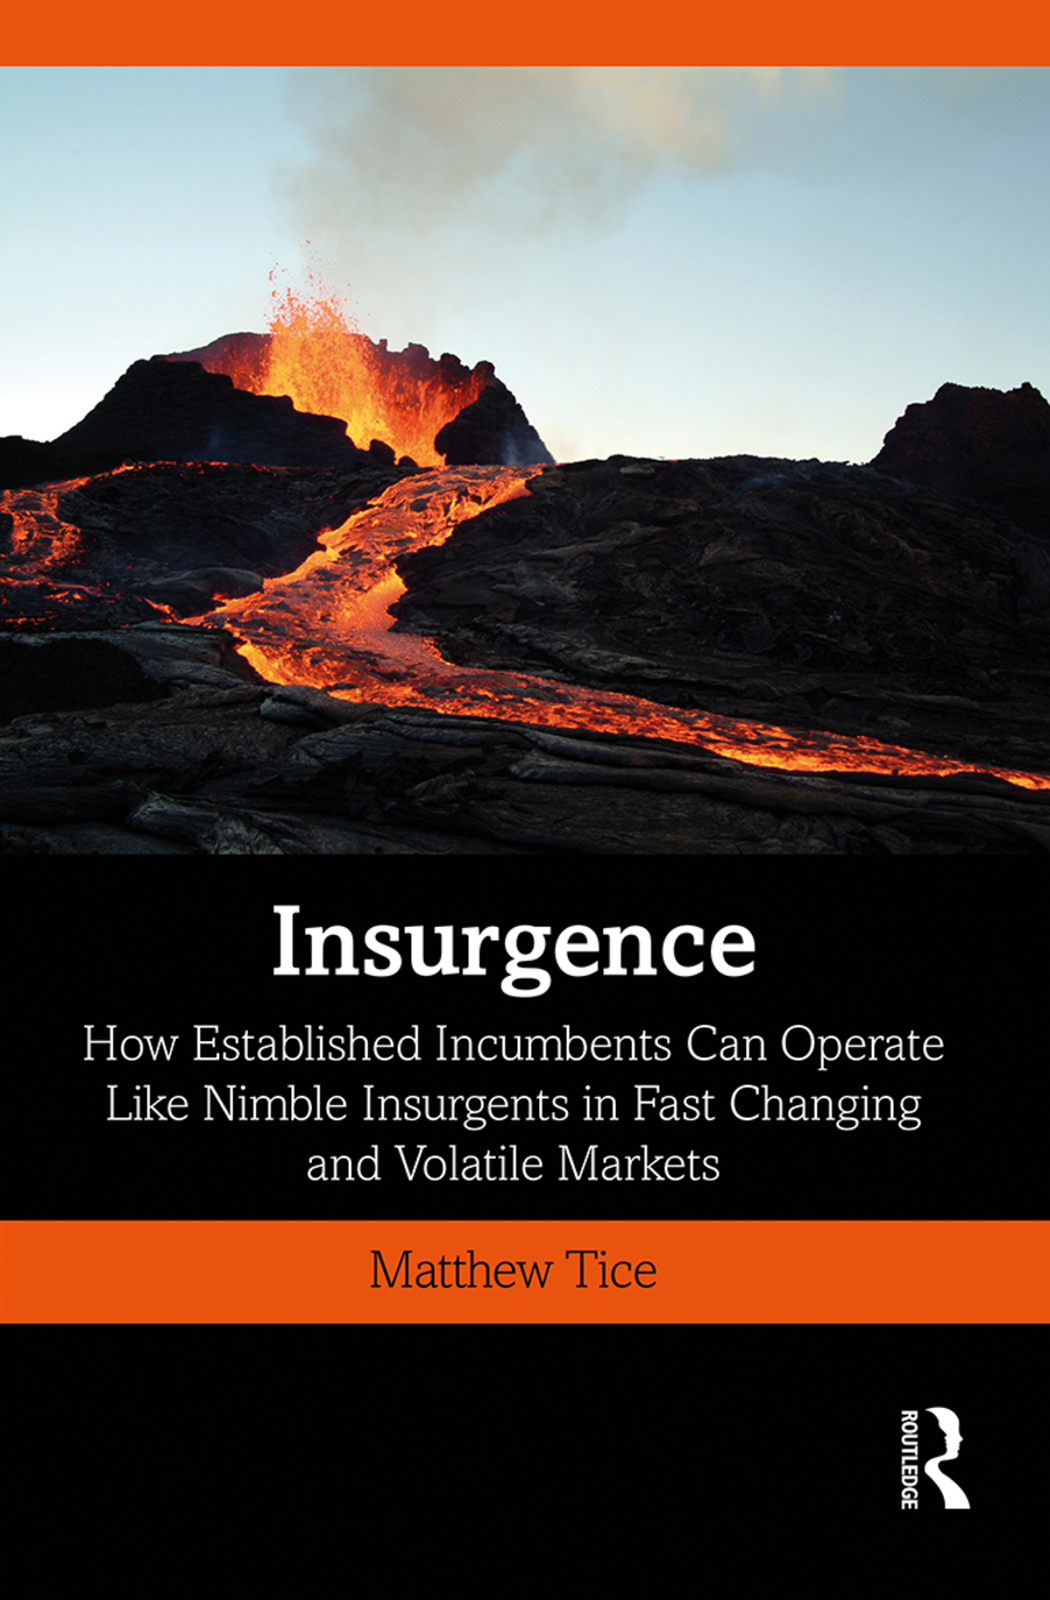 Insurgence: How Established Incumbents Can Operate Like Nimble Insurgents in Fast Changing and Volatile Markets book cover